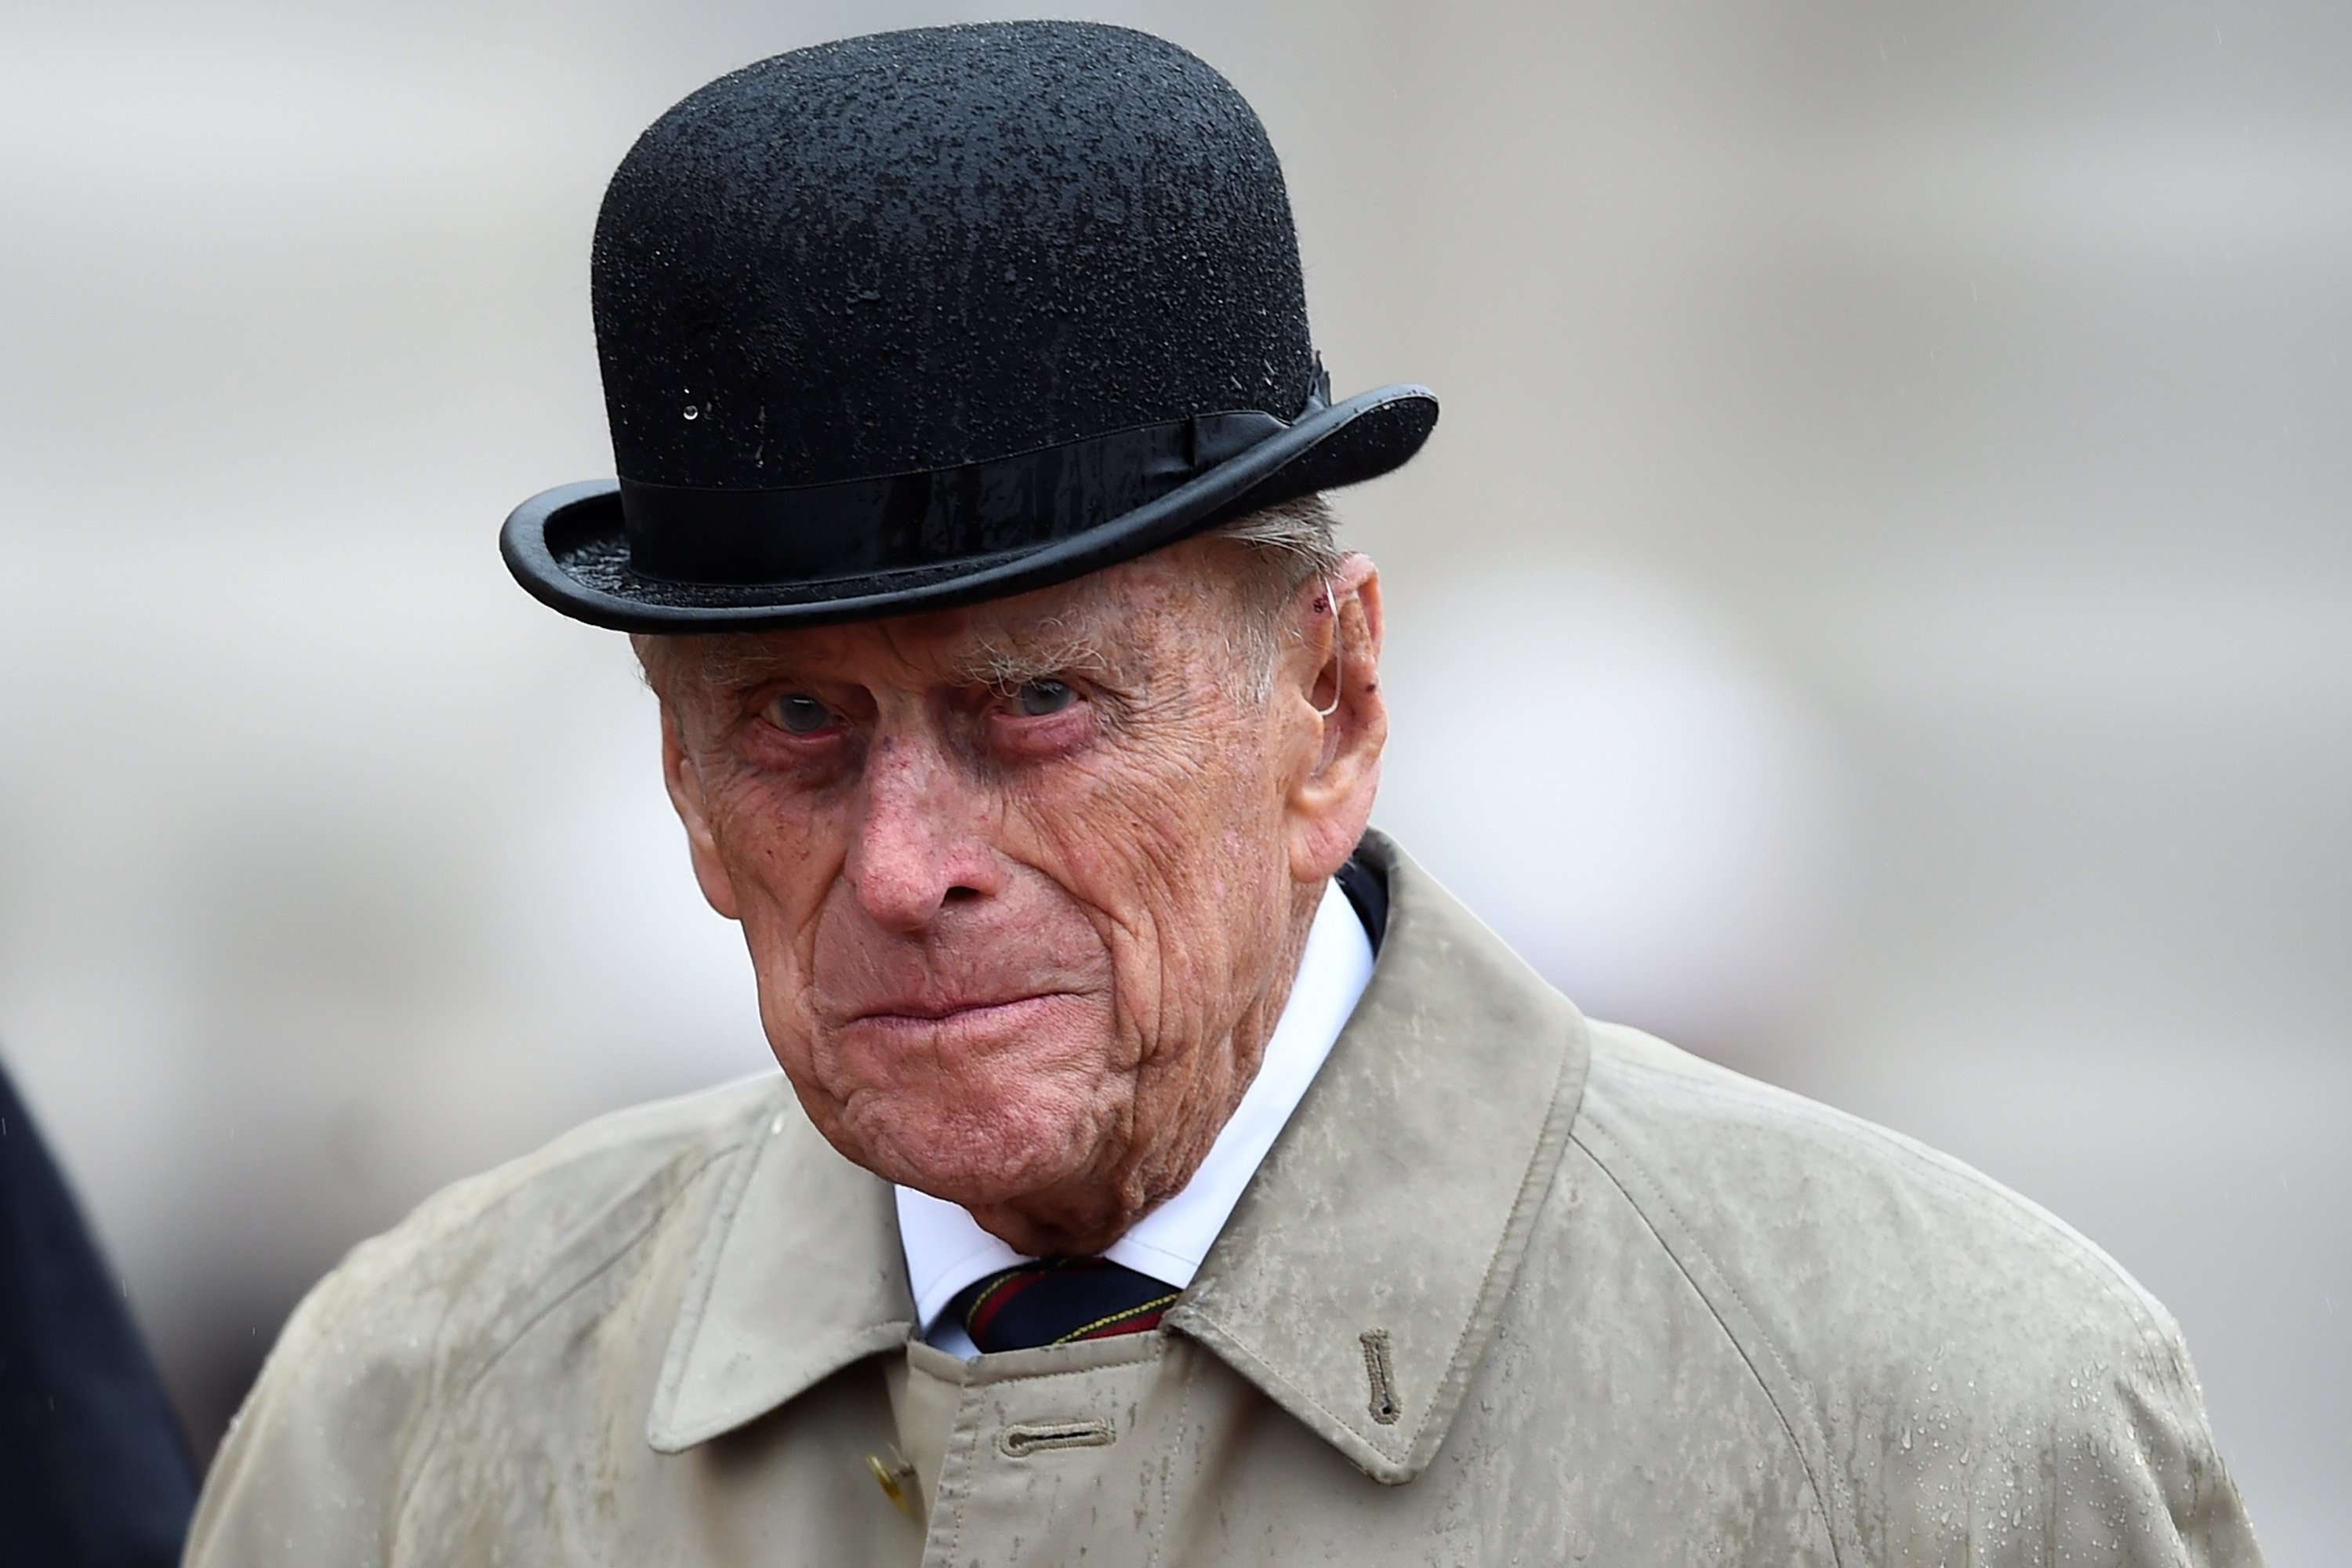 Prince Philip makes his final individual public engagement as he attends a parade to mark the finale of the 1664 Global Challenge on August 2, 2017, in London, England. Source: Getty Images.